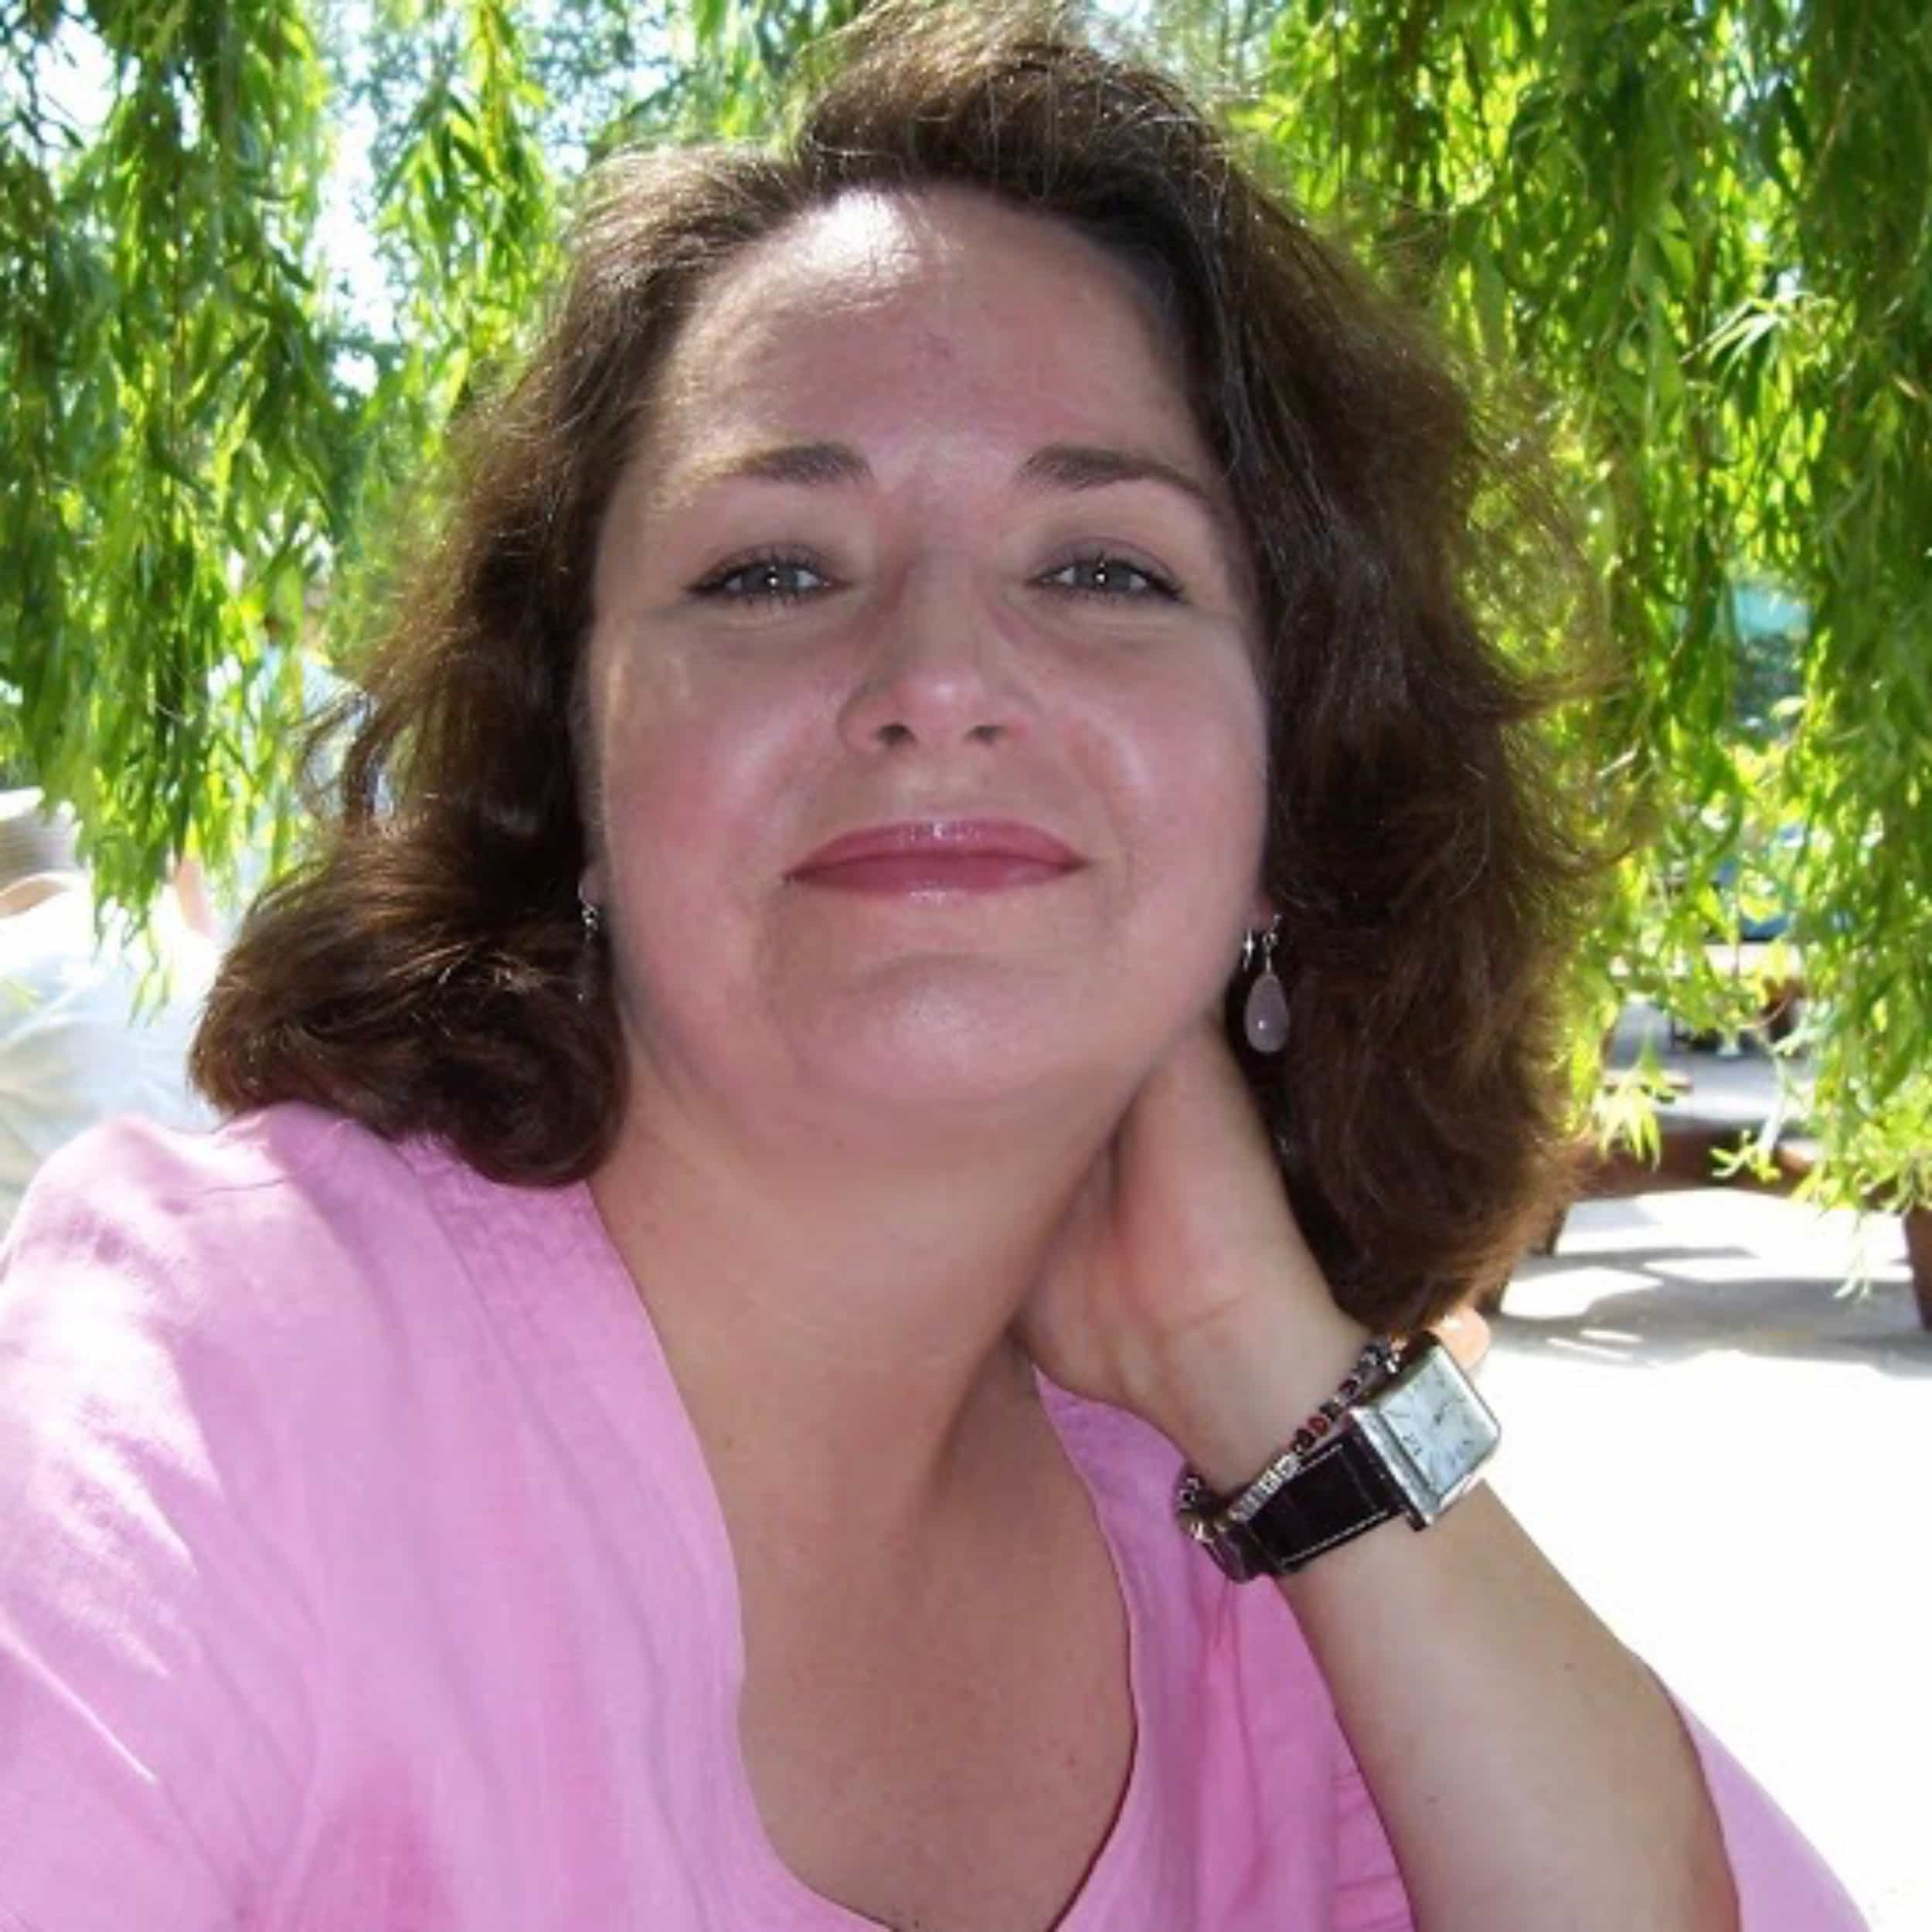 Woman in pink T Shirt smiling at the camera